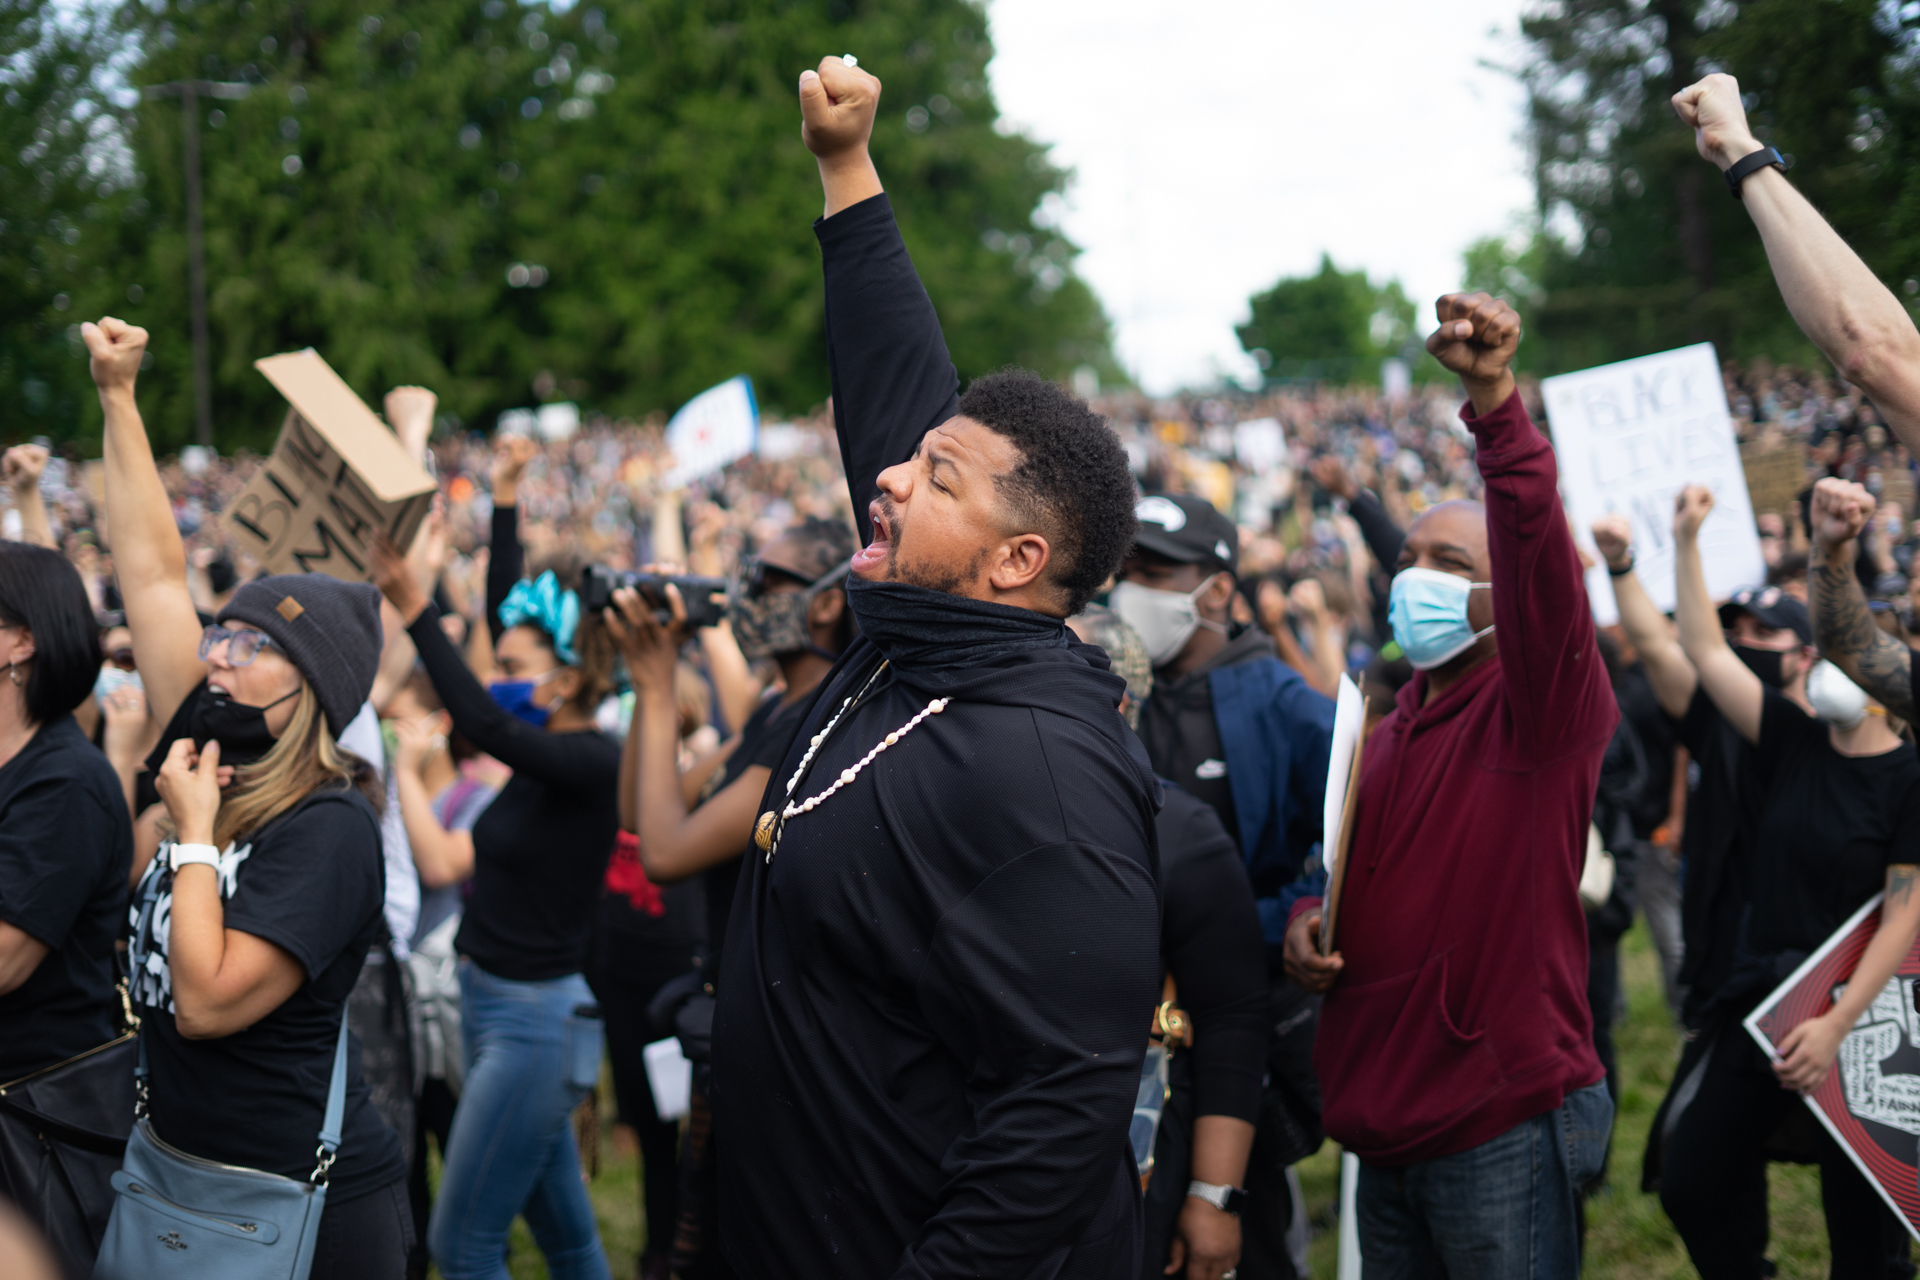 Jordan Chaney raises his fist during a Black Lives Matter chant.